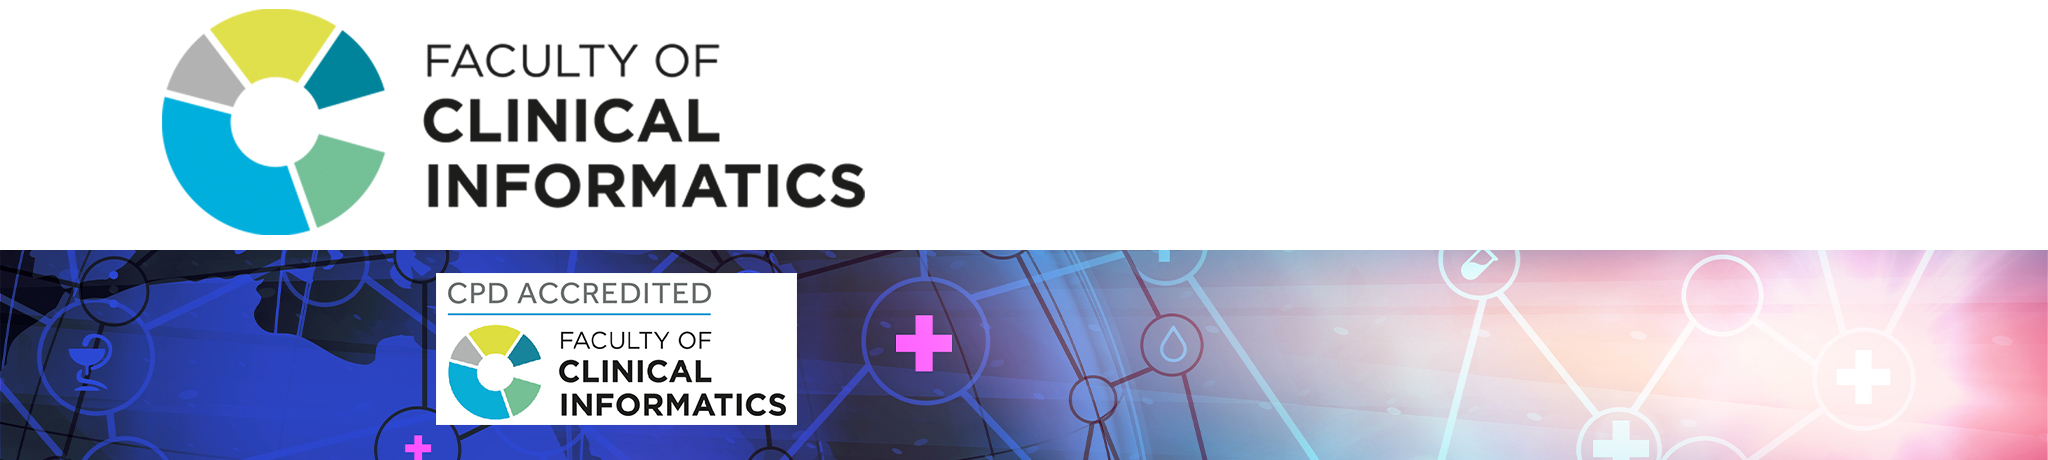 ehealth, digital health and healthcare informatics CPD Conference